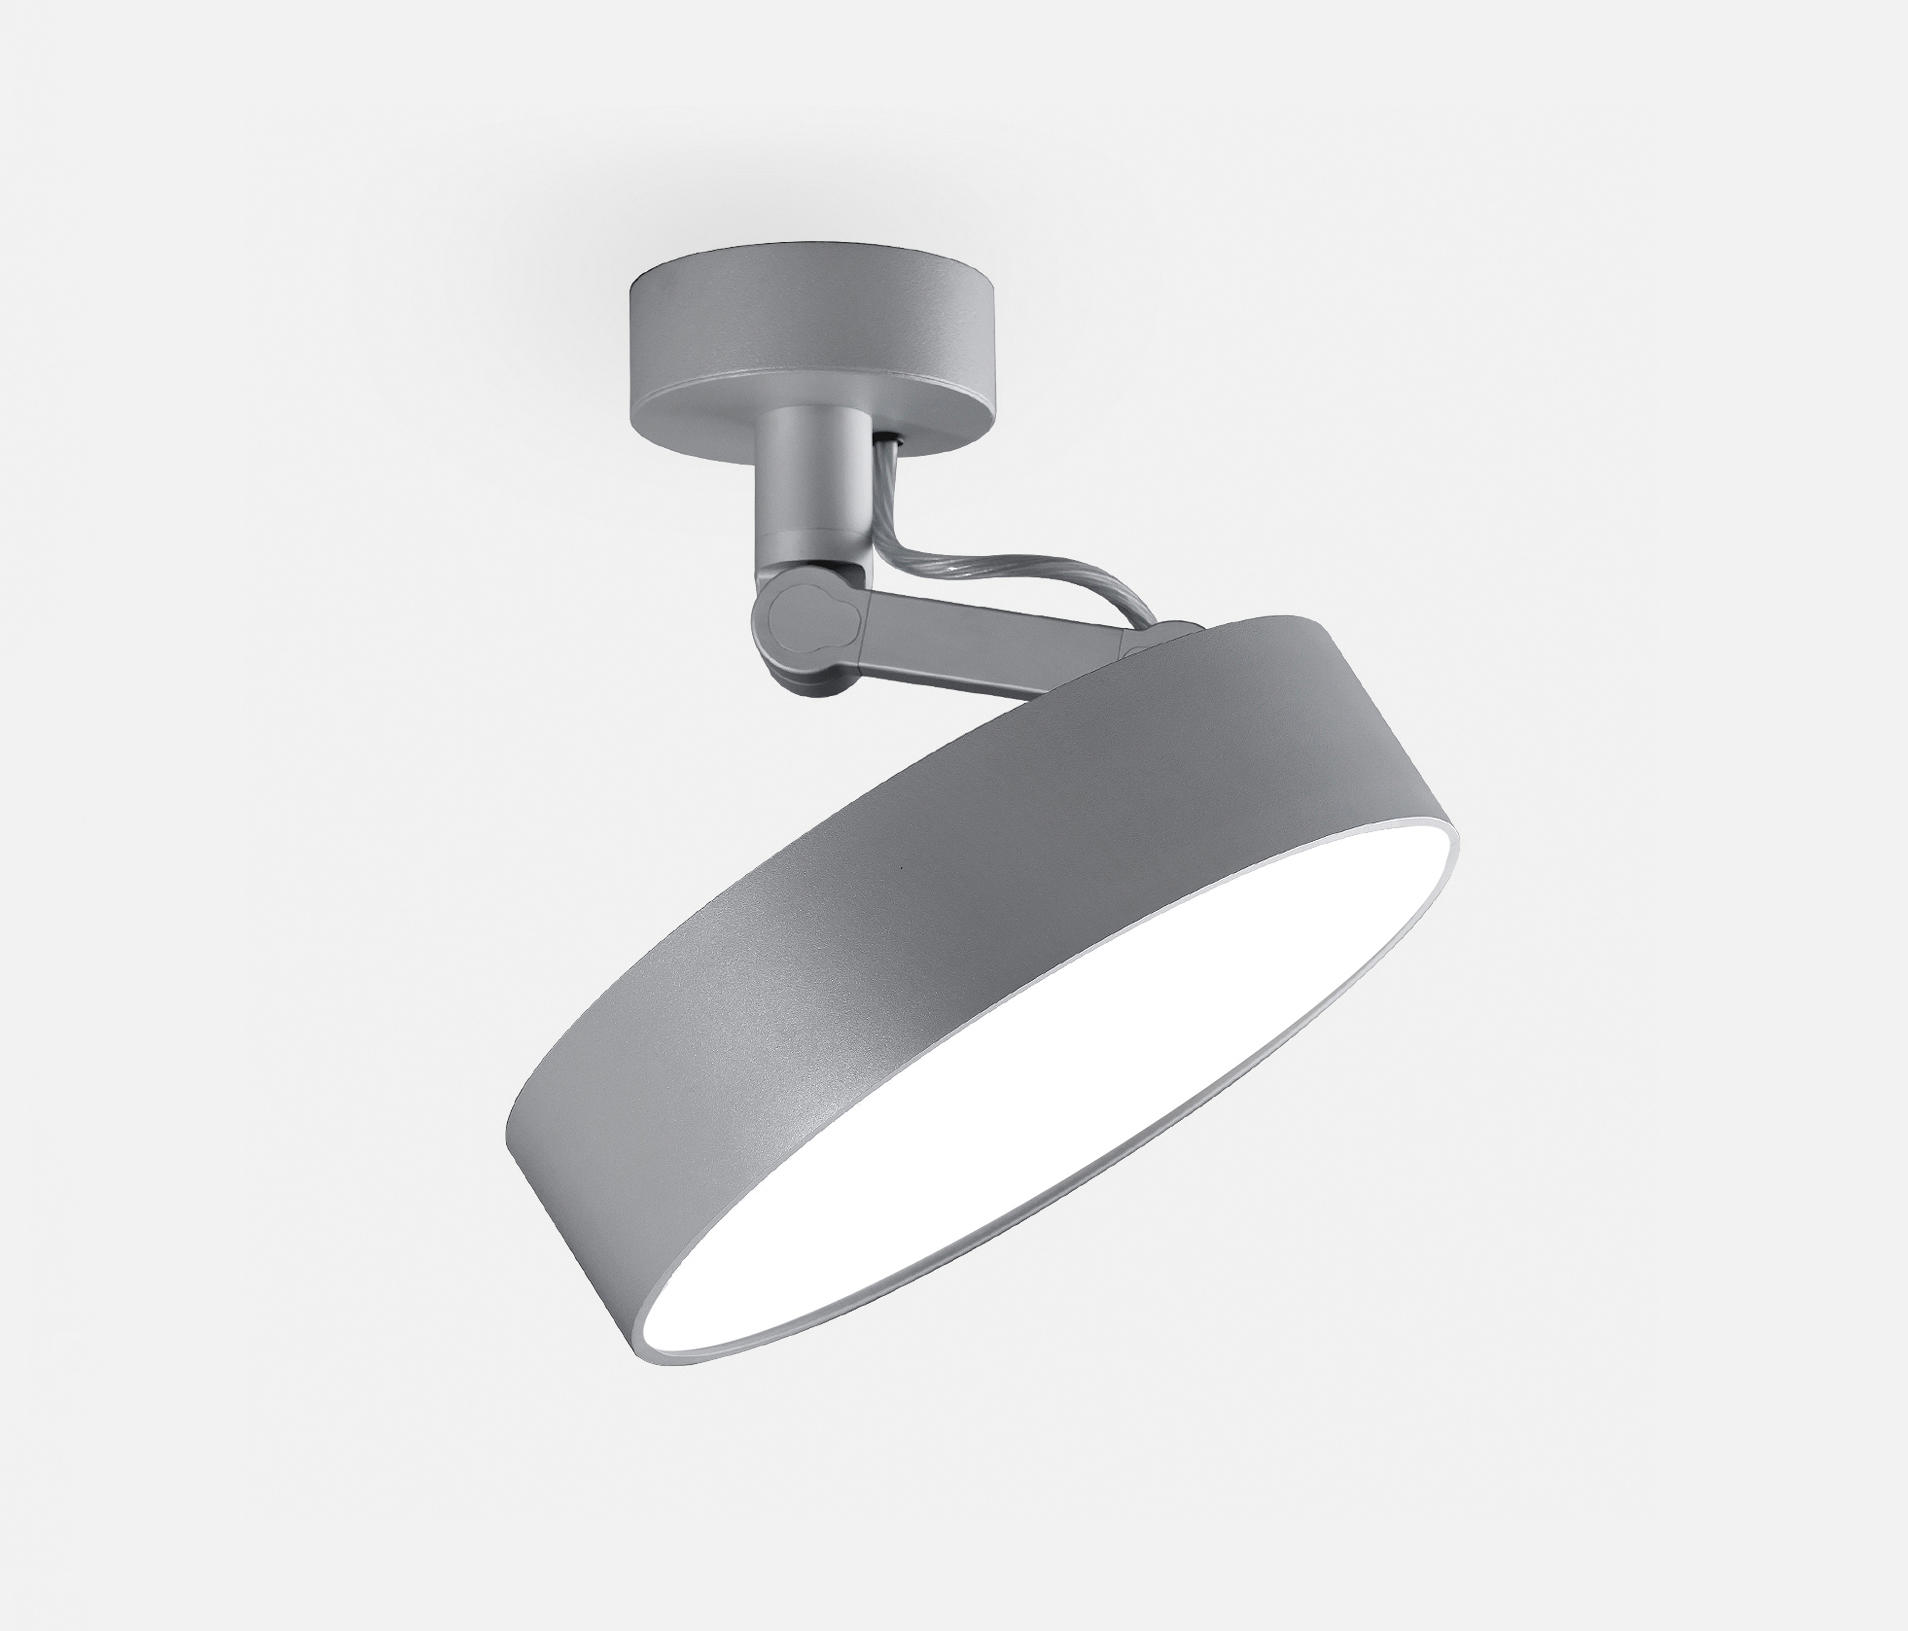 BASIC Z1 - Ceiling Lights From Lightnet